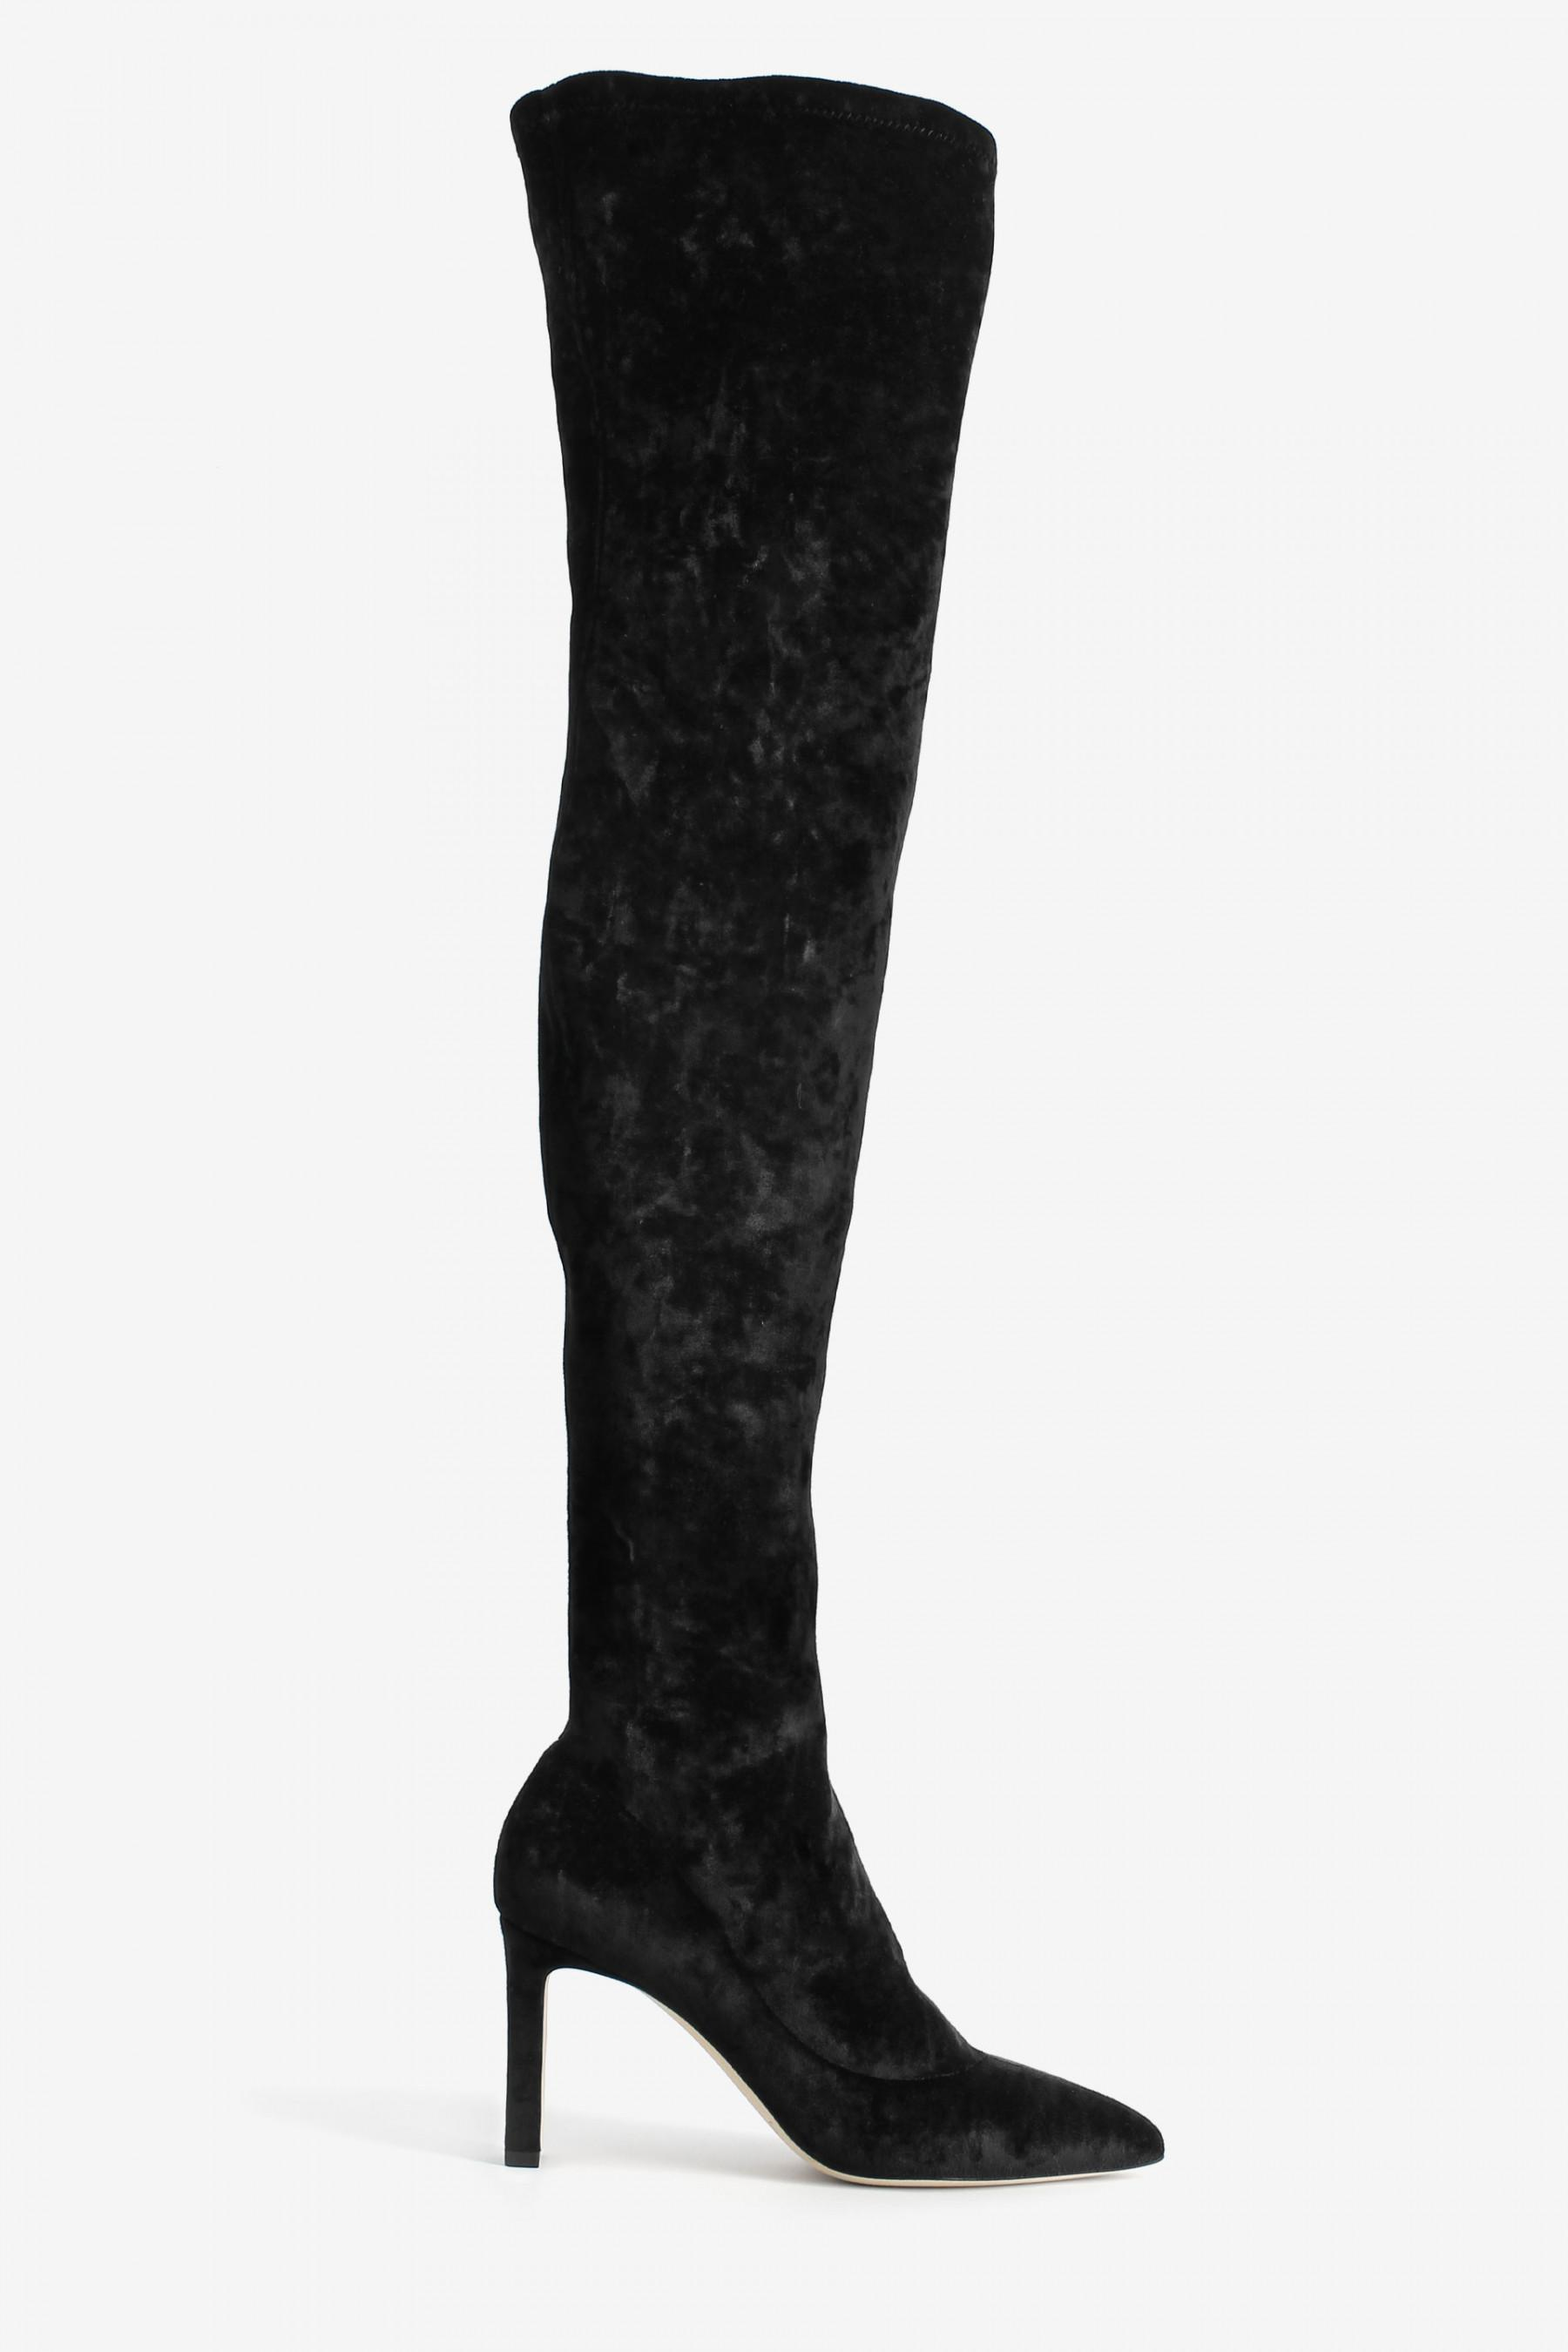 Jimmy choo Helaine Suede Leather Heel Boots